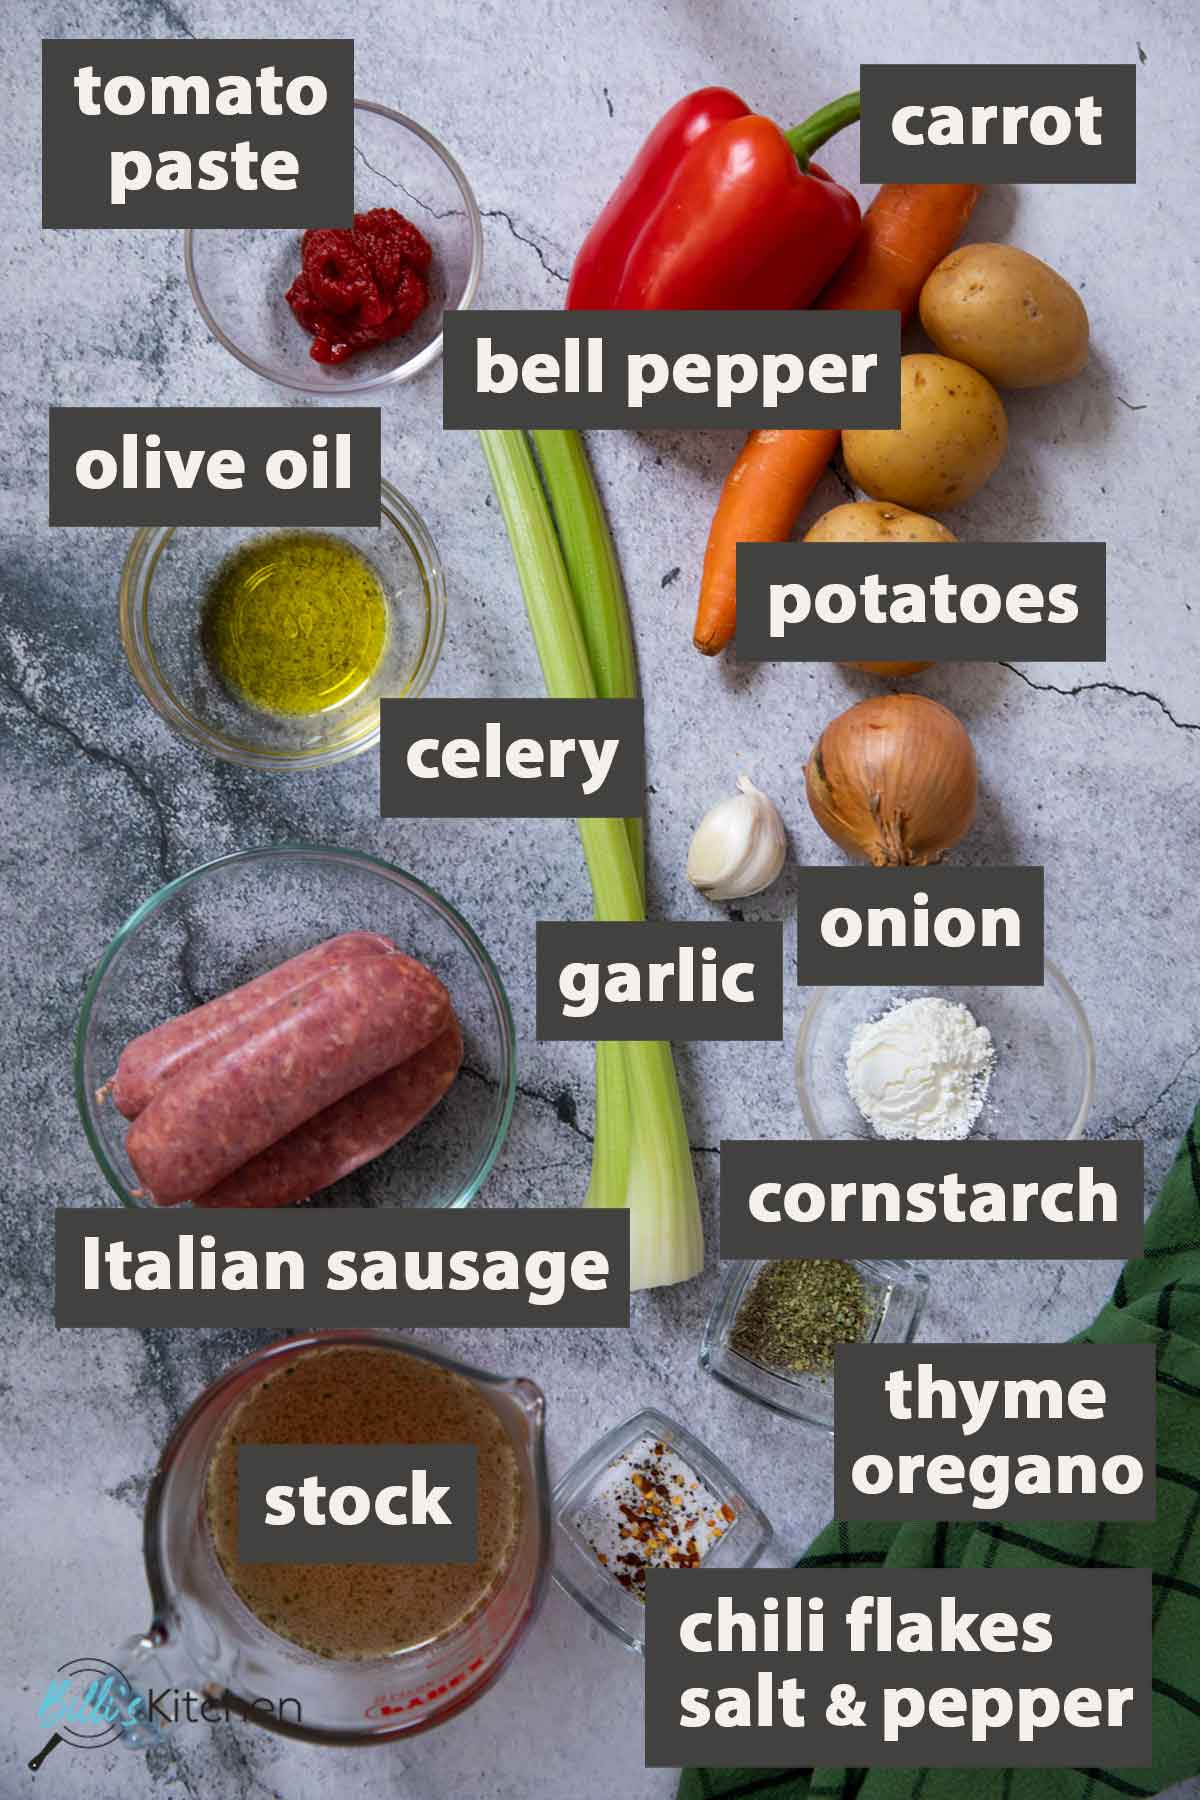 An image showing all the ingredients you need to prepare one-pot sausage stew at home.